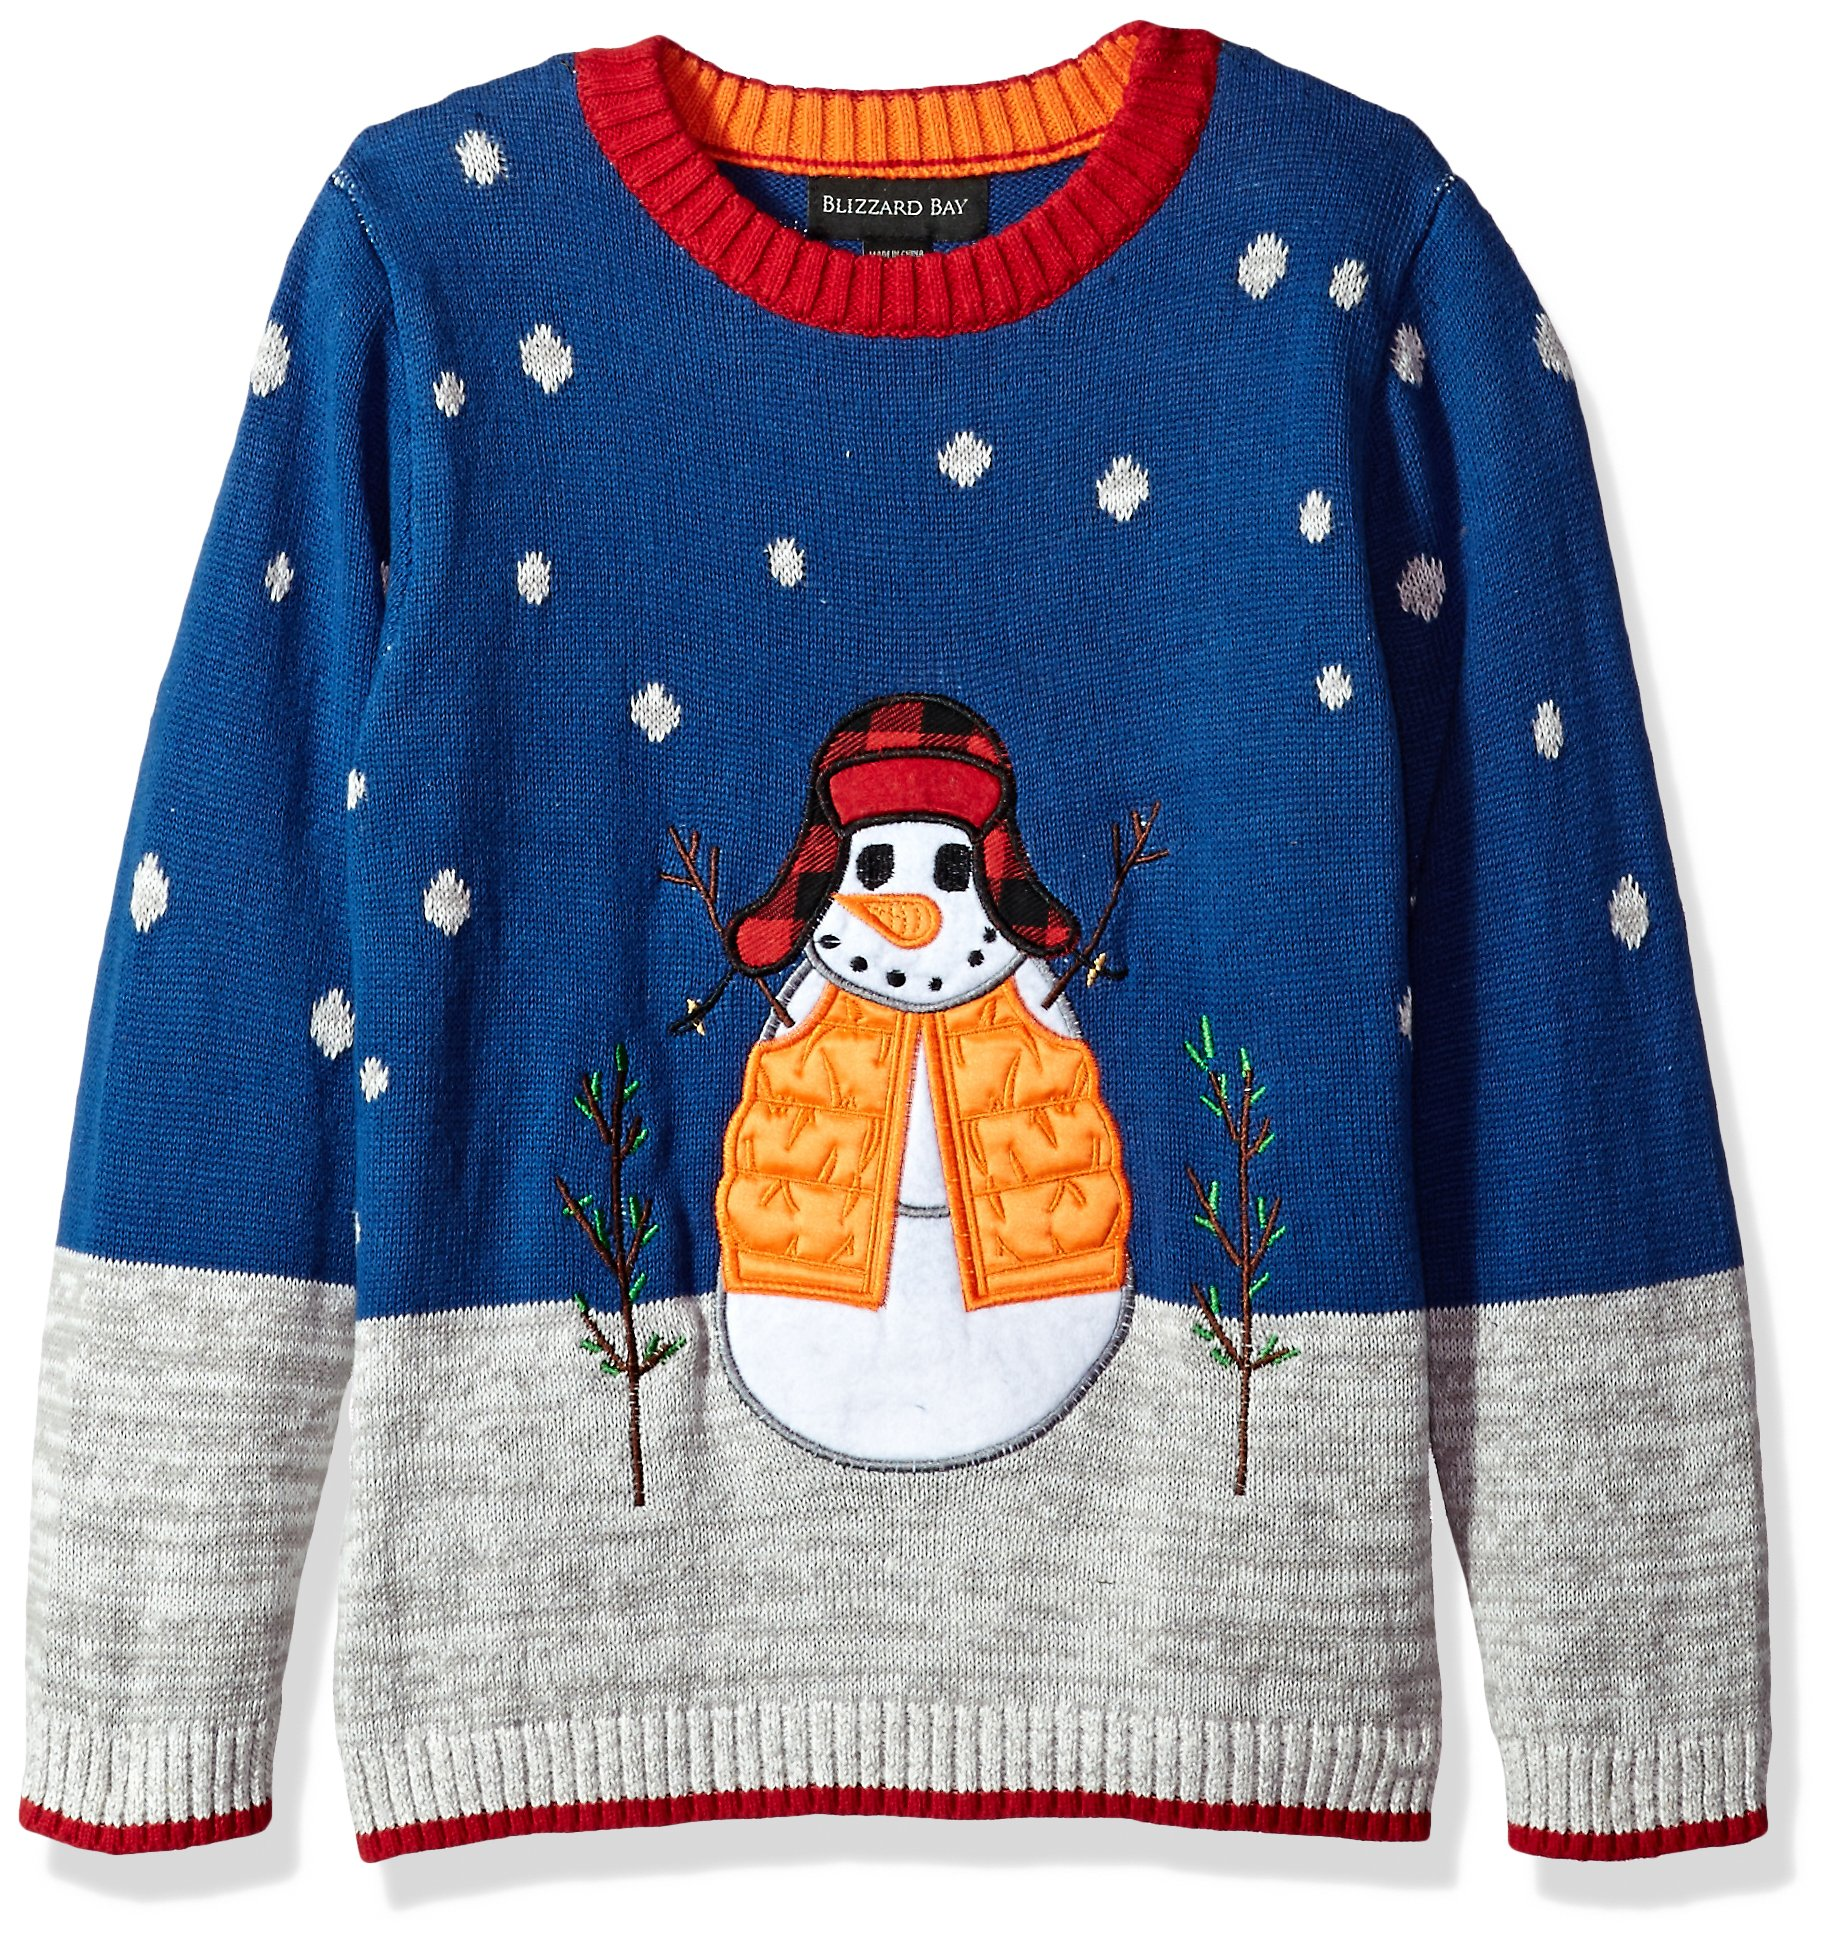 Blizzard Bay Big Boys' Snowman with Hat Xmas Sweater, Blue Combo, 12/14 M